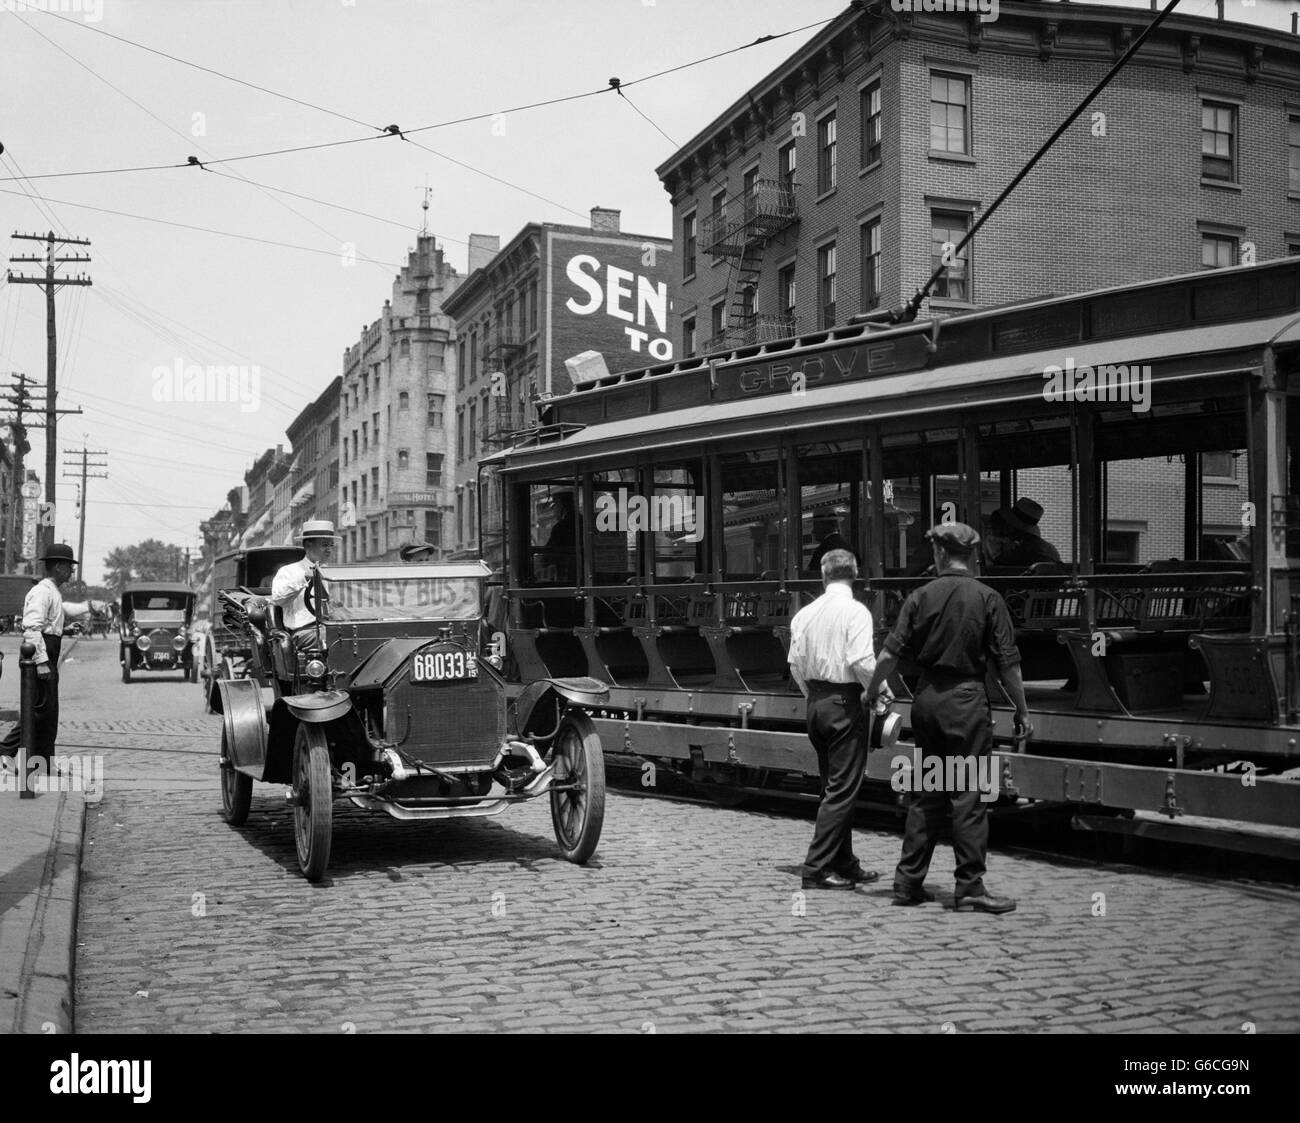 1910s JITNEY BUS AND OPEN ELECTRIC TROLLEY CAR ON BRICK STREET IN HOBOKEN NEW JERSEY USA - Stock Image